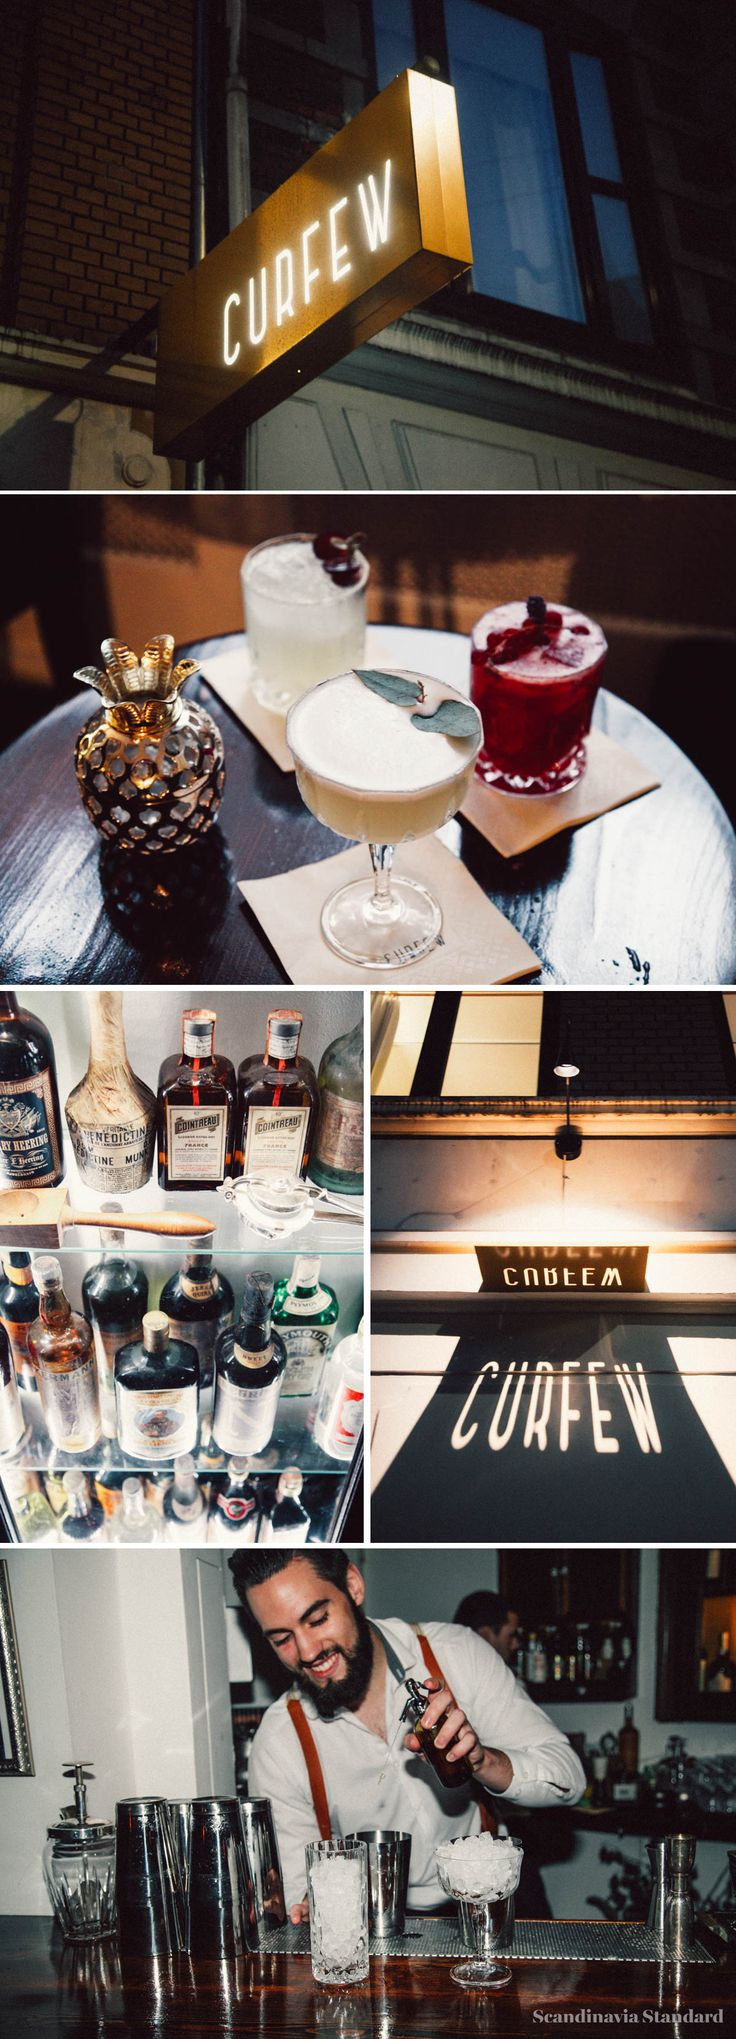 Curfew Cocktail Bar Copenhagen | Scandinavia Standard